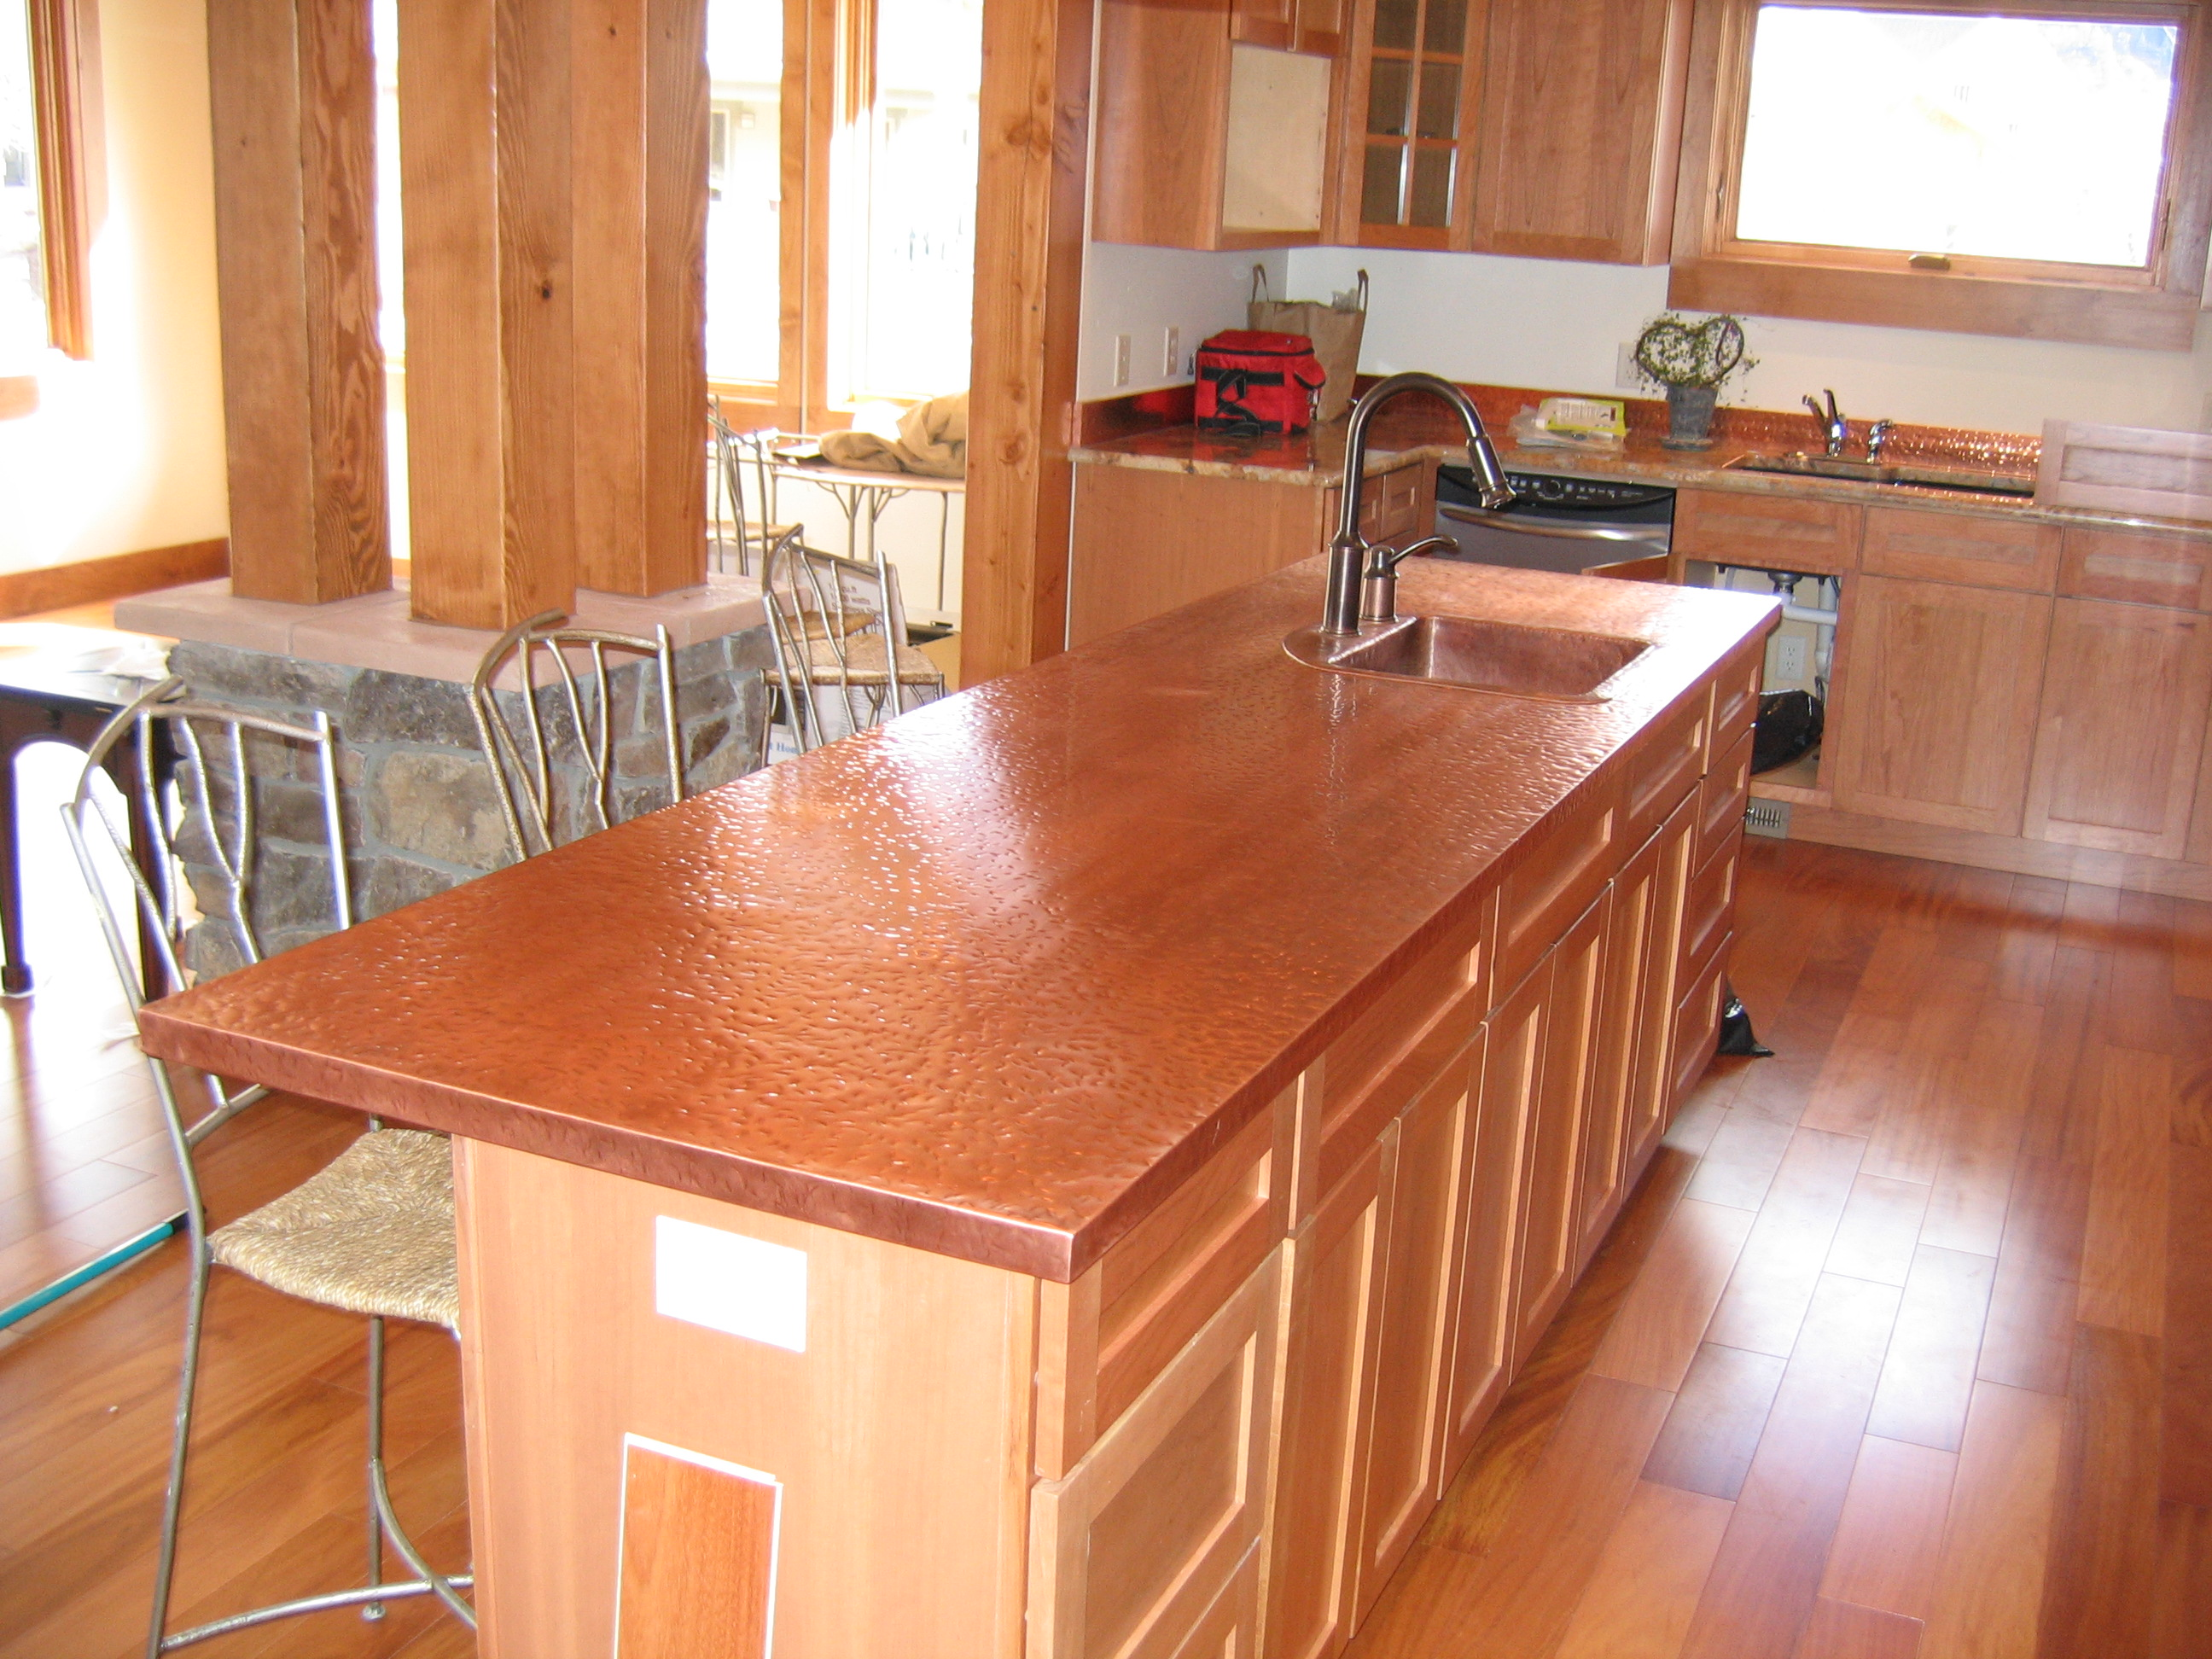 Western Countertops Copper Countertops Cost Installed Plus Pros And Cons Of